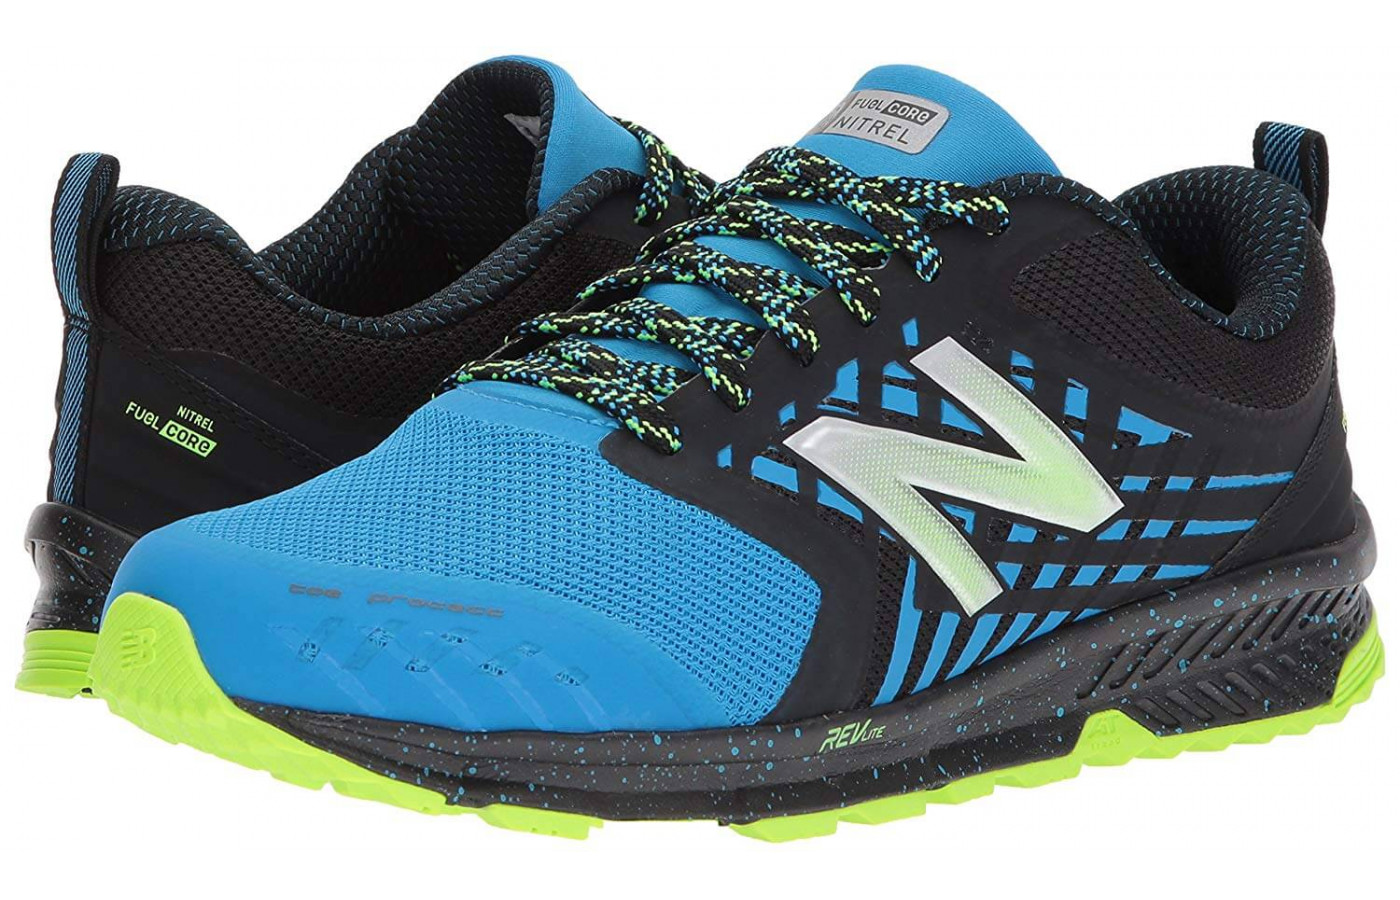 New Balance Fuelcore Nitrel Pair